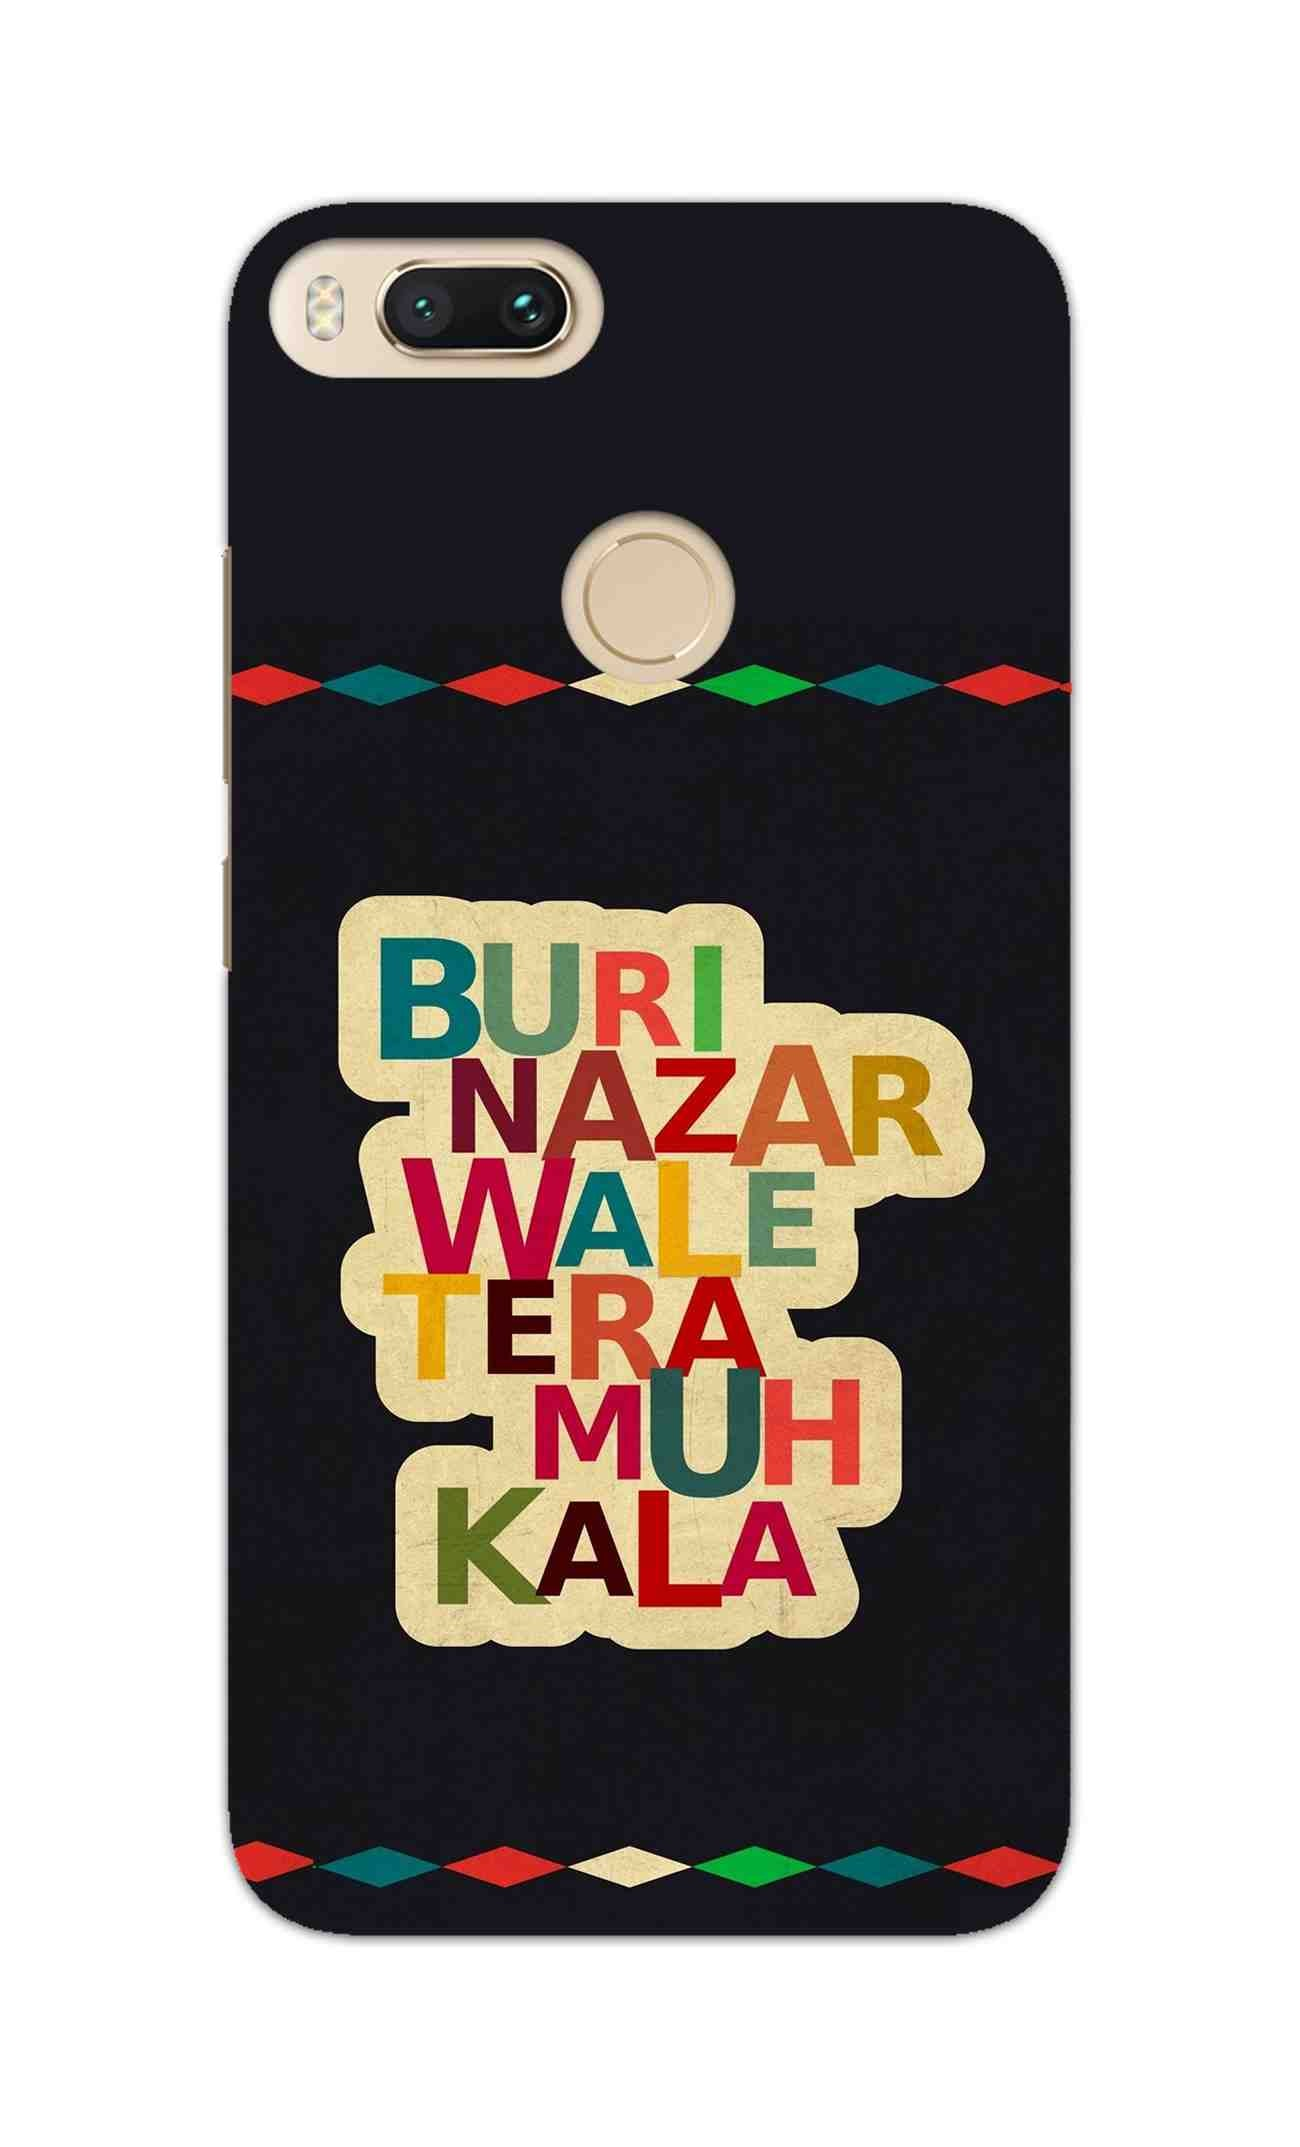 Buri Nazar Wale Tera Muh Kala Indian Typography RedMi A1 Mobile Cover Case - MADANYU